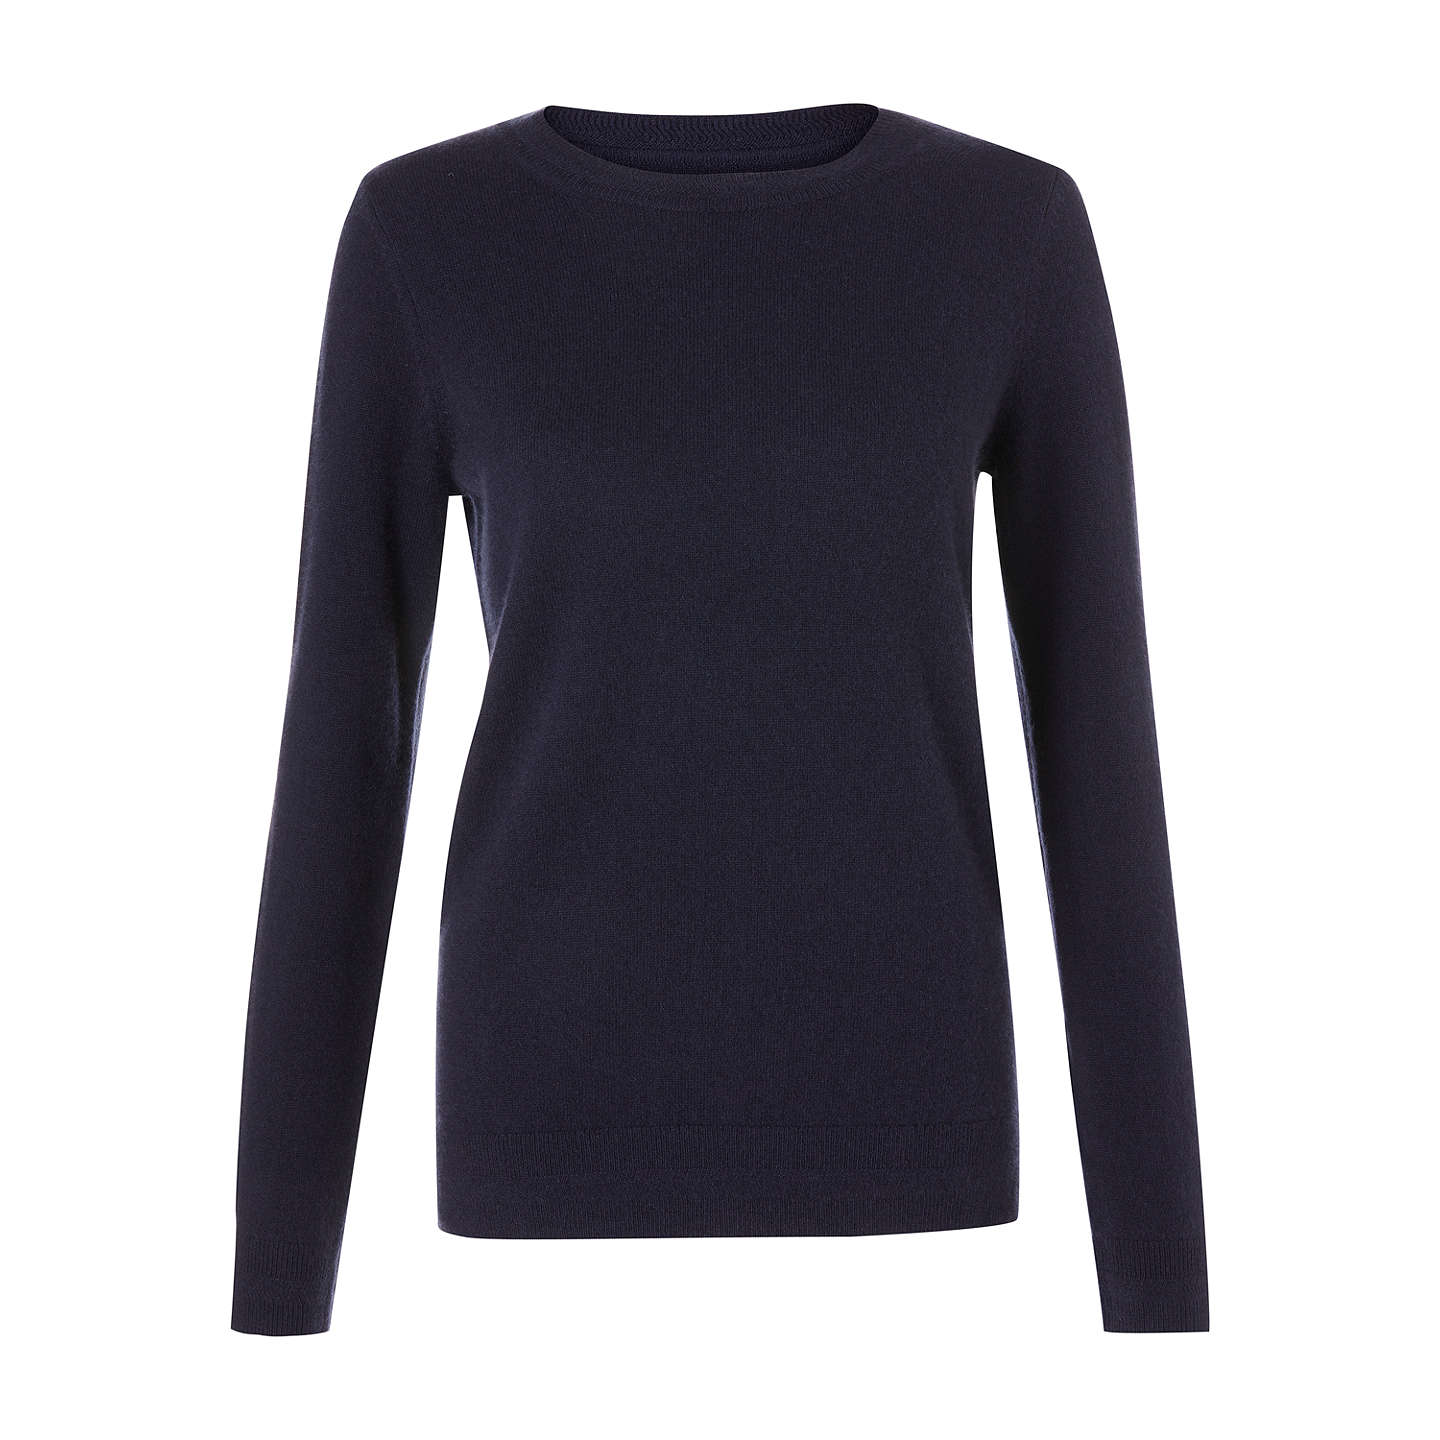 BuyBoden Cashmere Crew Neck Jumper, Navy, XS Online at johnlewis.com